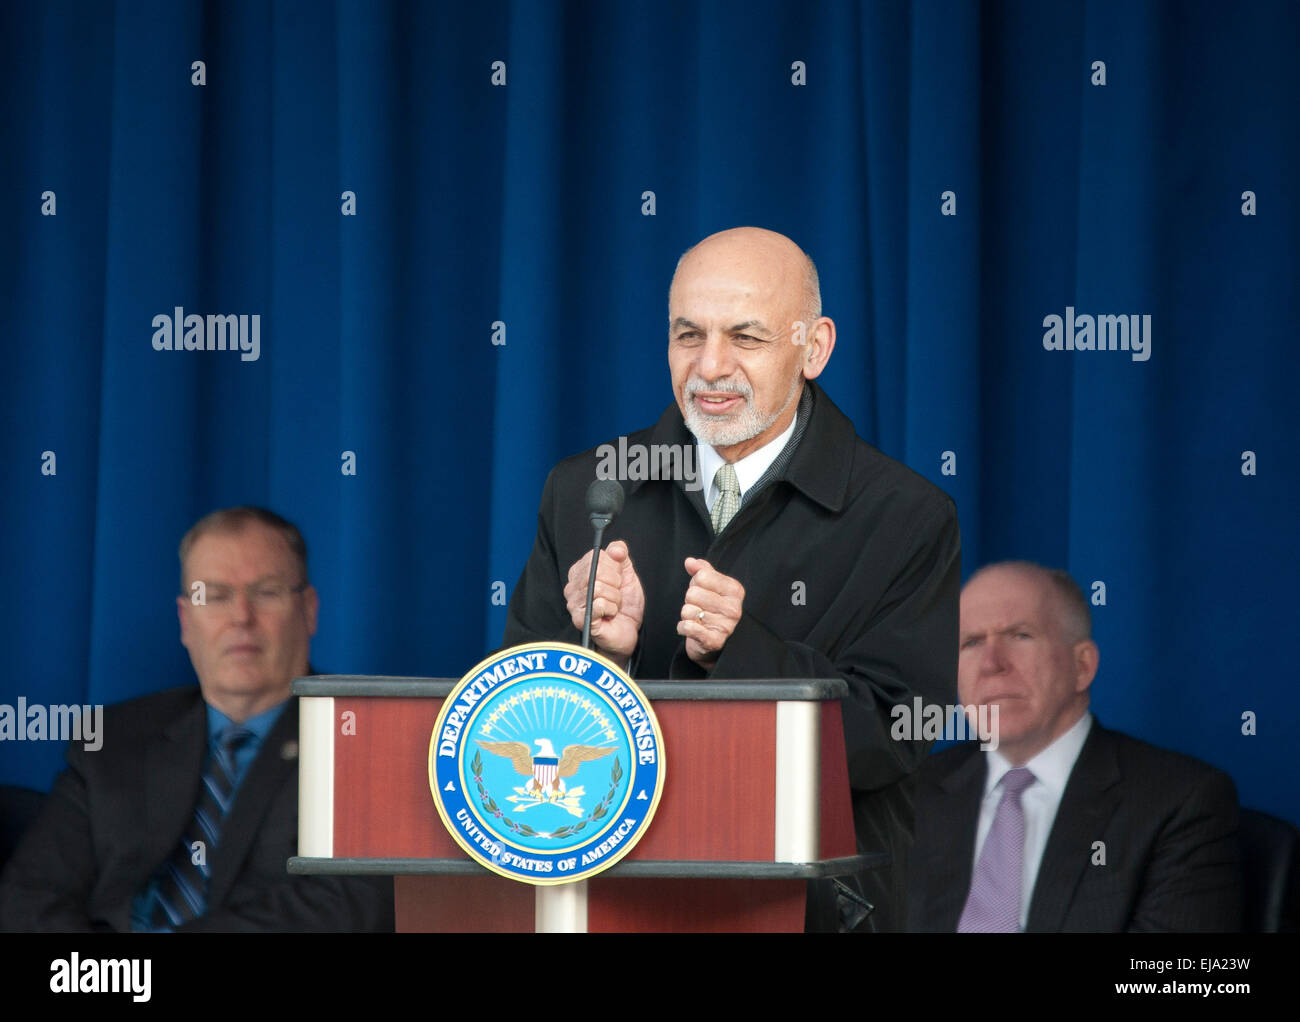 Washington, DC, USA. 23rd Mar, 2015. Afghan President Ashraf Ghani speaks during an event to thank service members - Stock Image